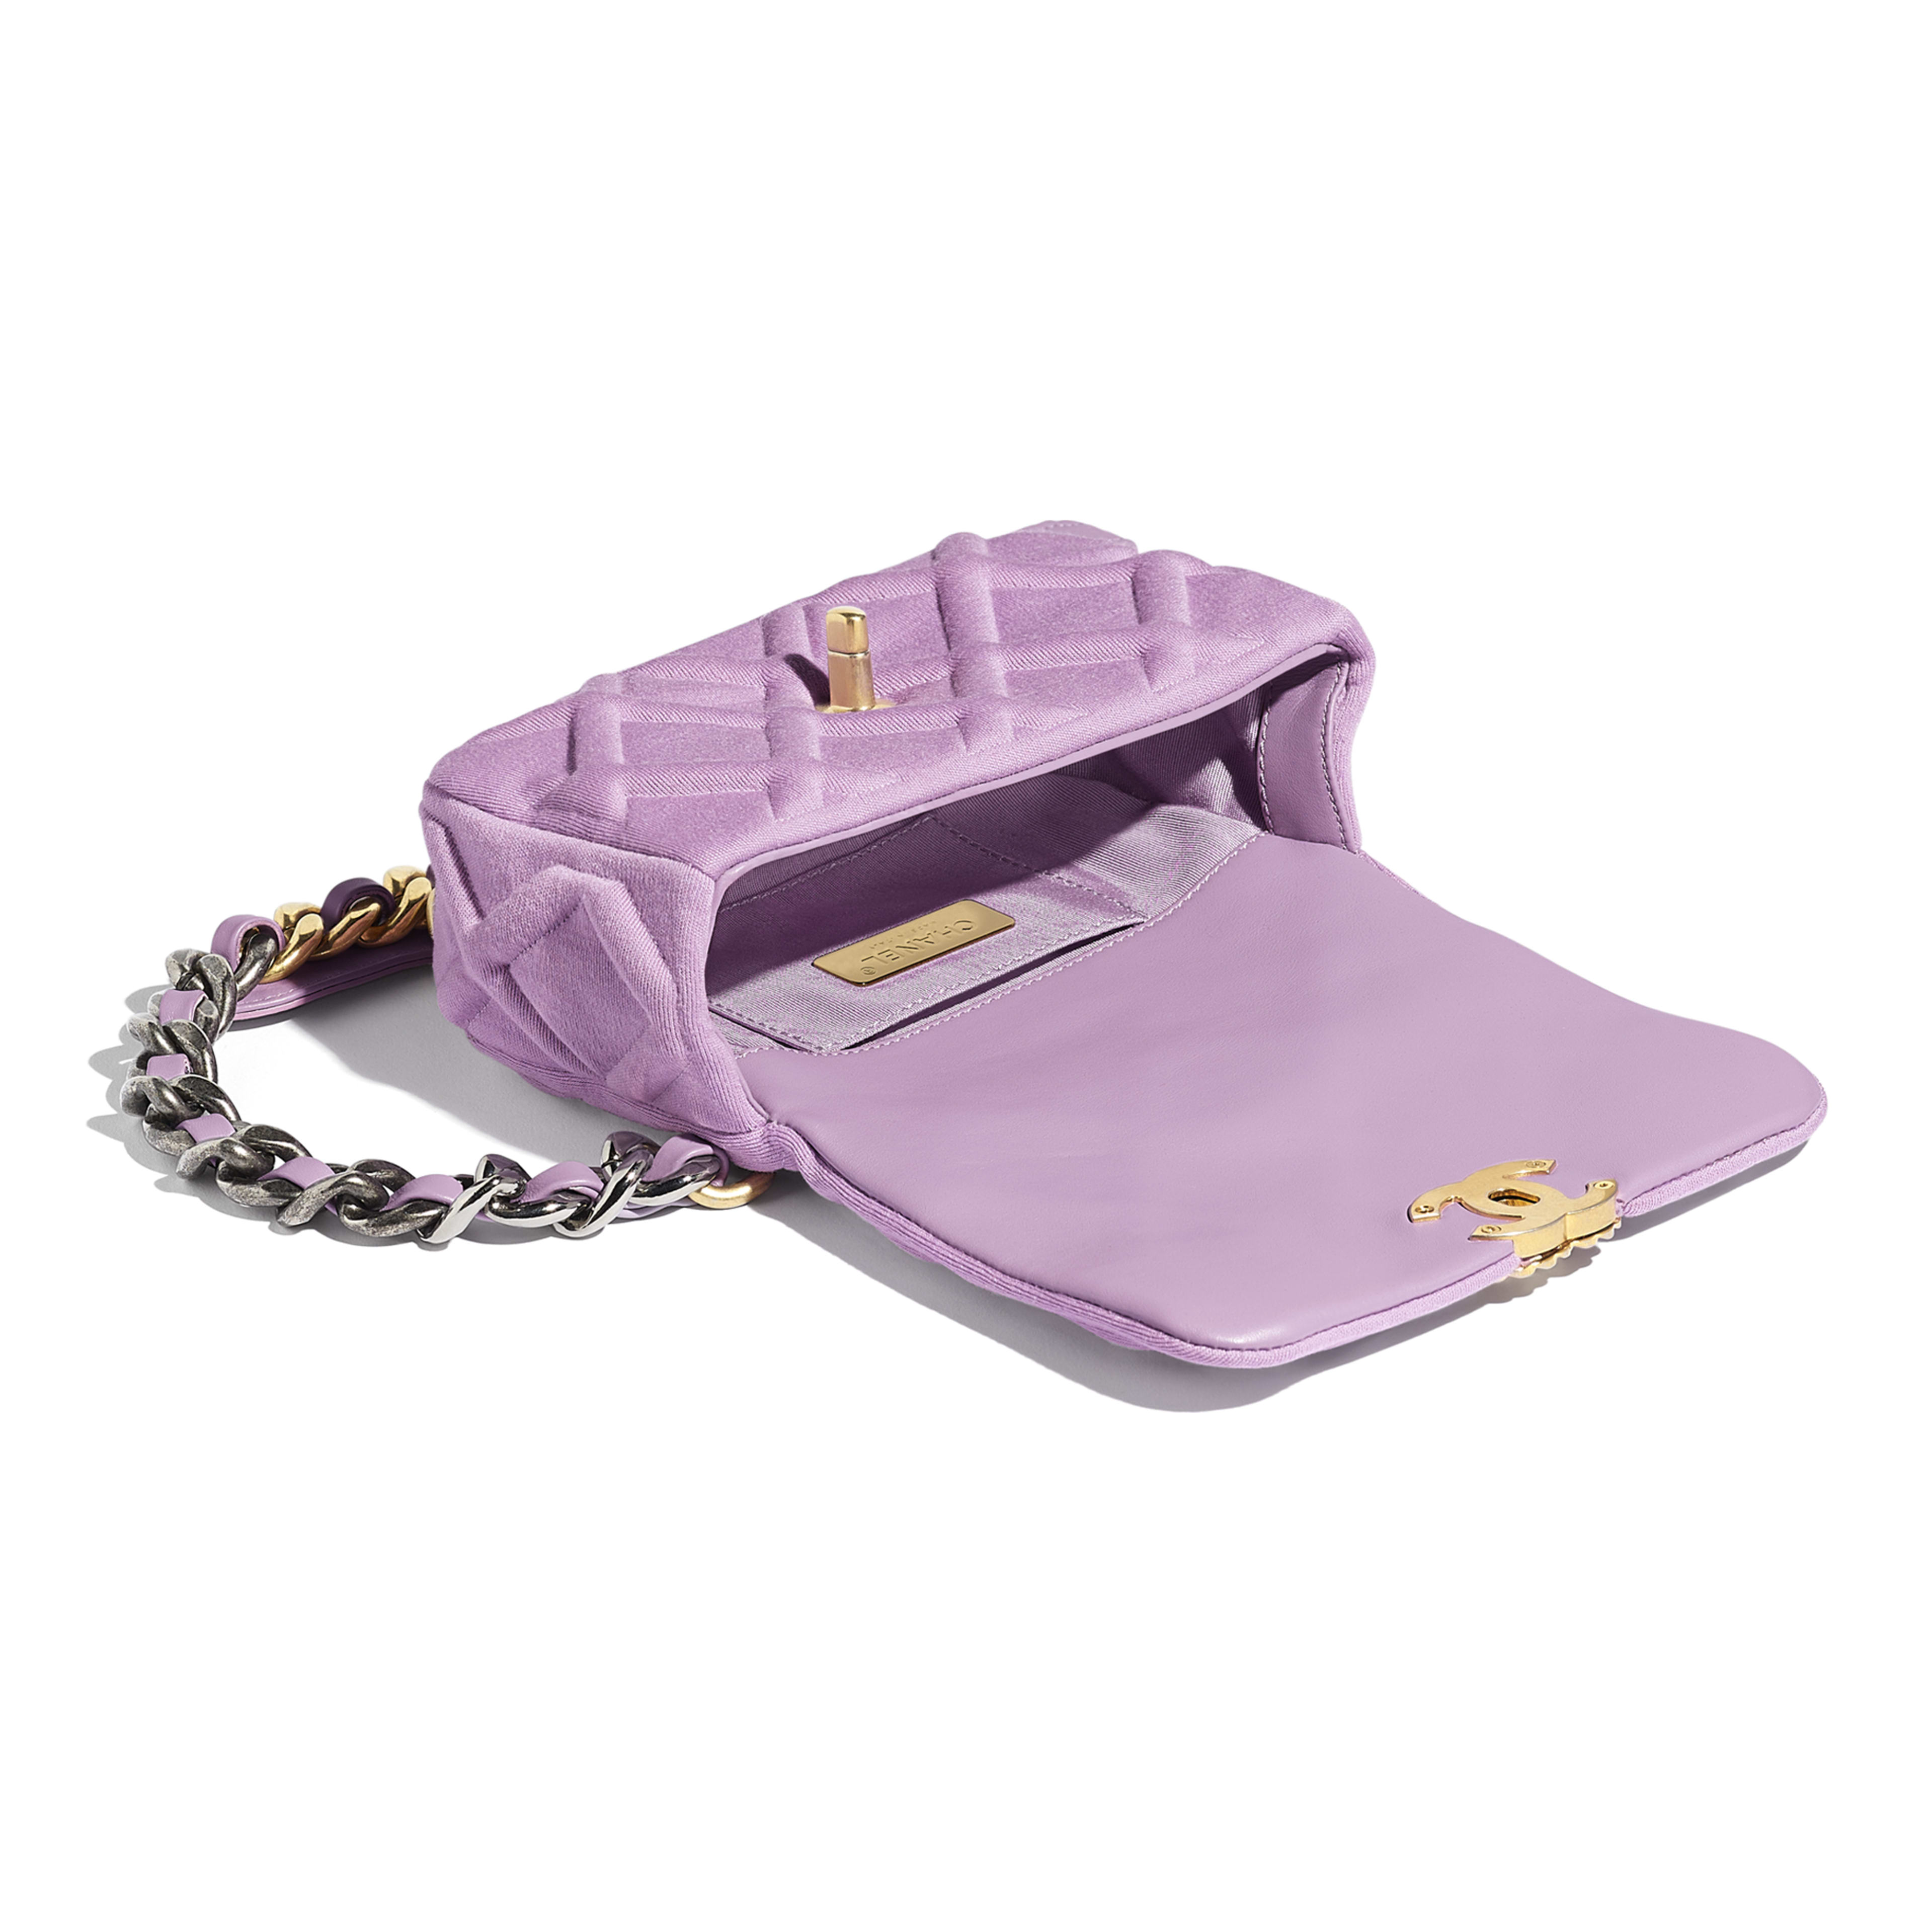 CHANEL 19 Waist Bag - Mauve - Jersey, Gold-Tone, Silver-Tone & Ruthenium-Finish Metal - Other view - see full sized version